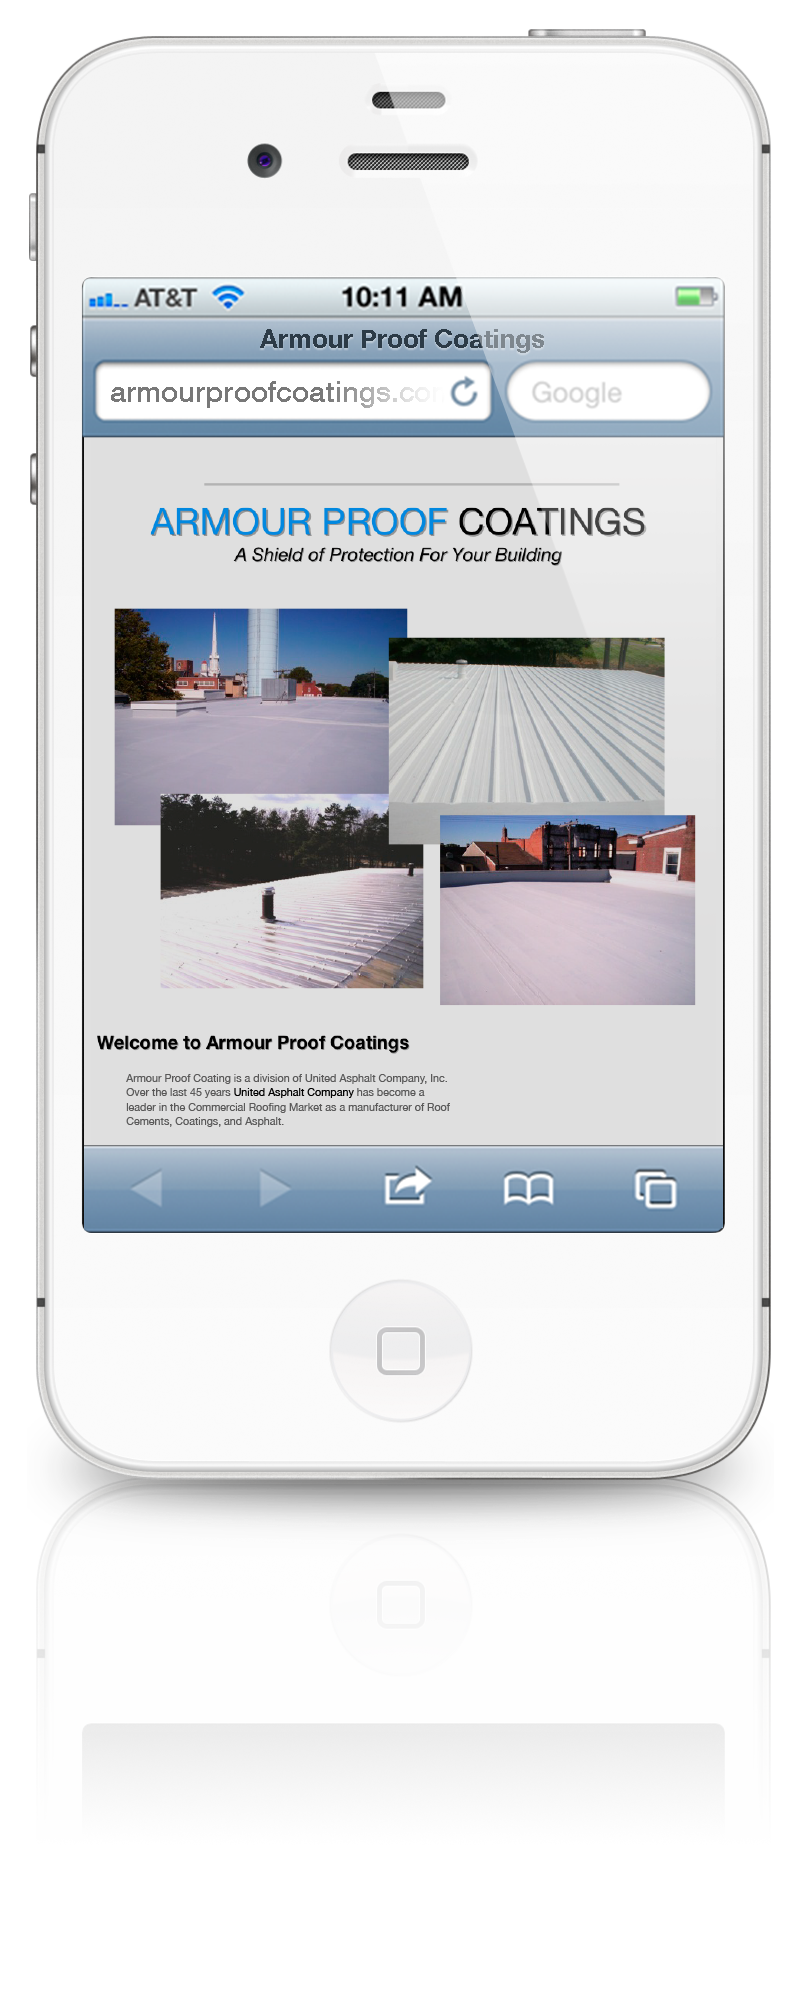 Armour Proof Coatings Initial Website Launch on an iPhone 4S